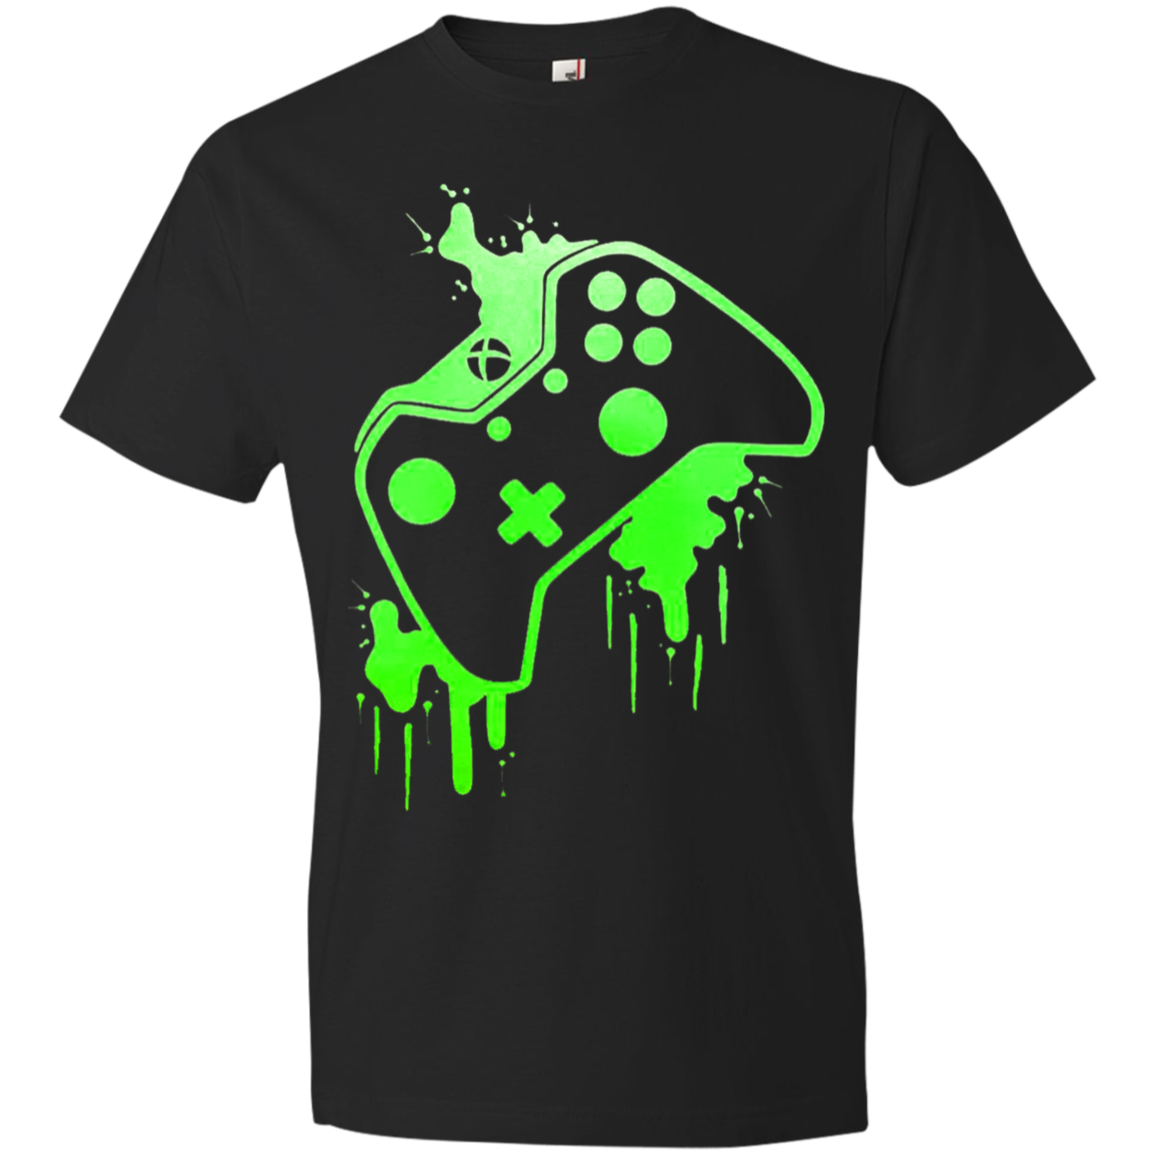 Game Controller Graphic Tee